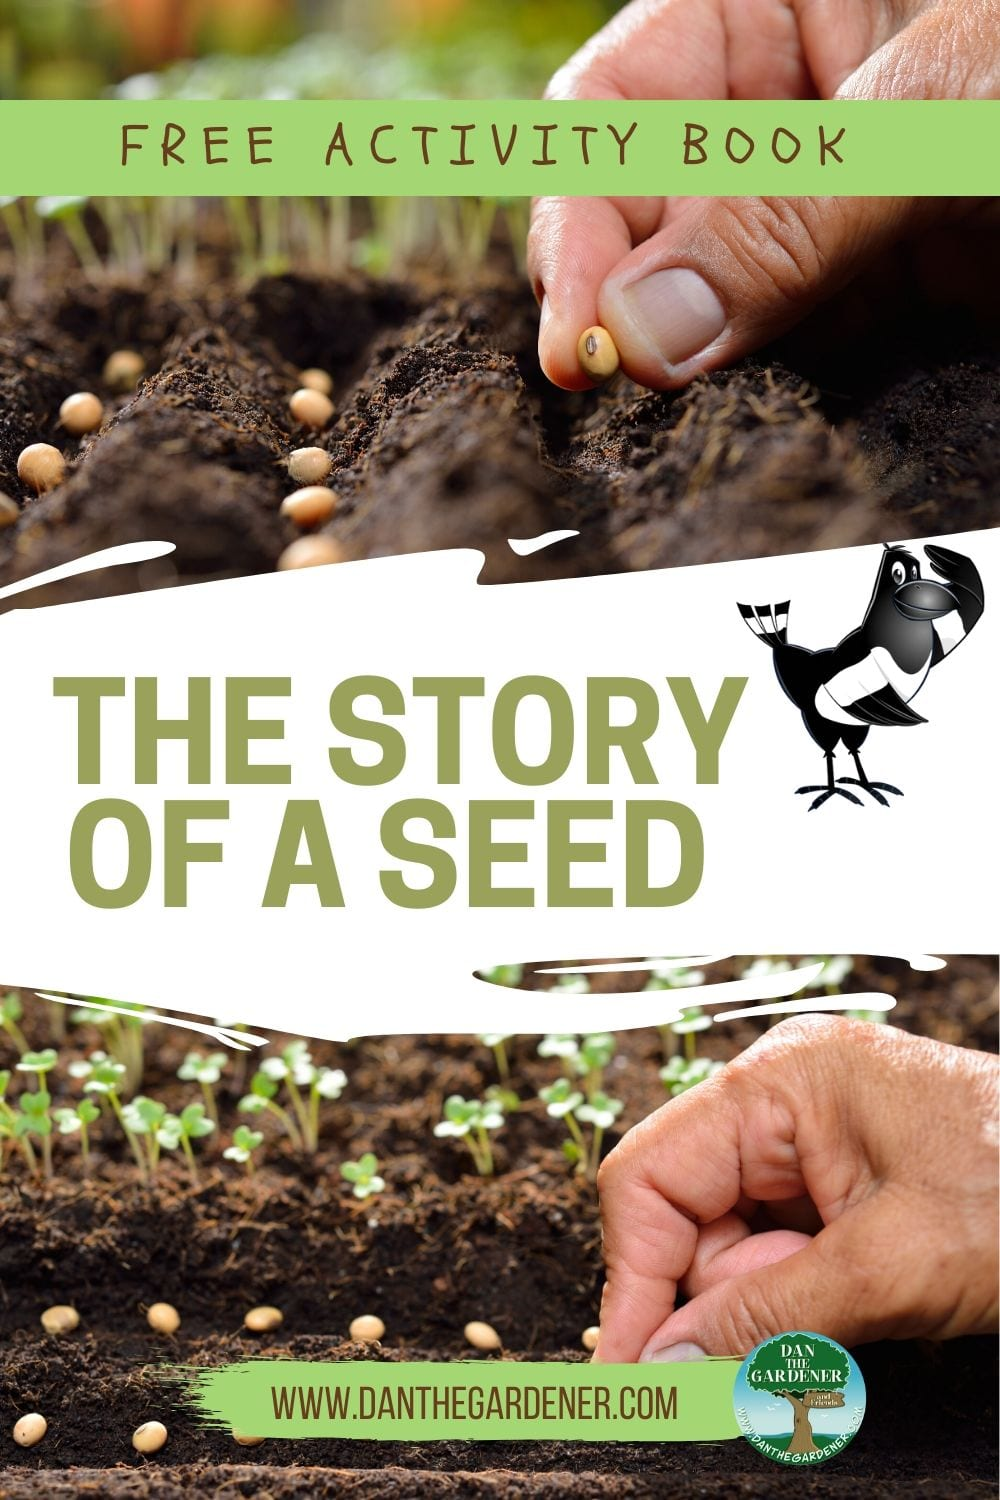 The Story Of A Seed